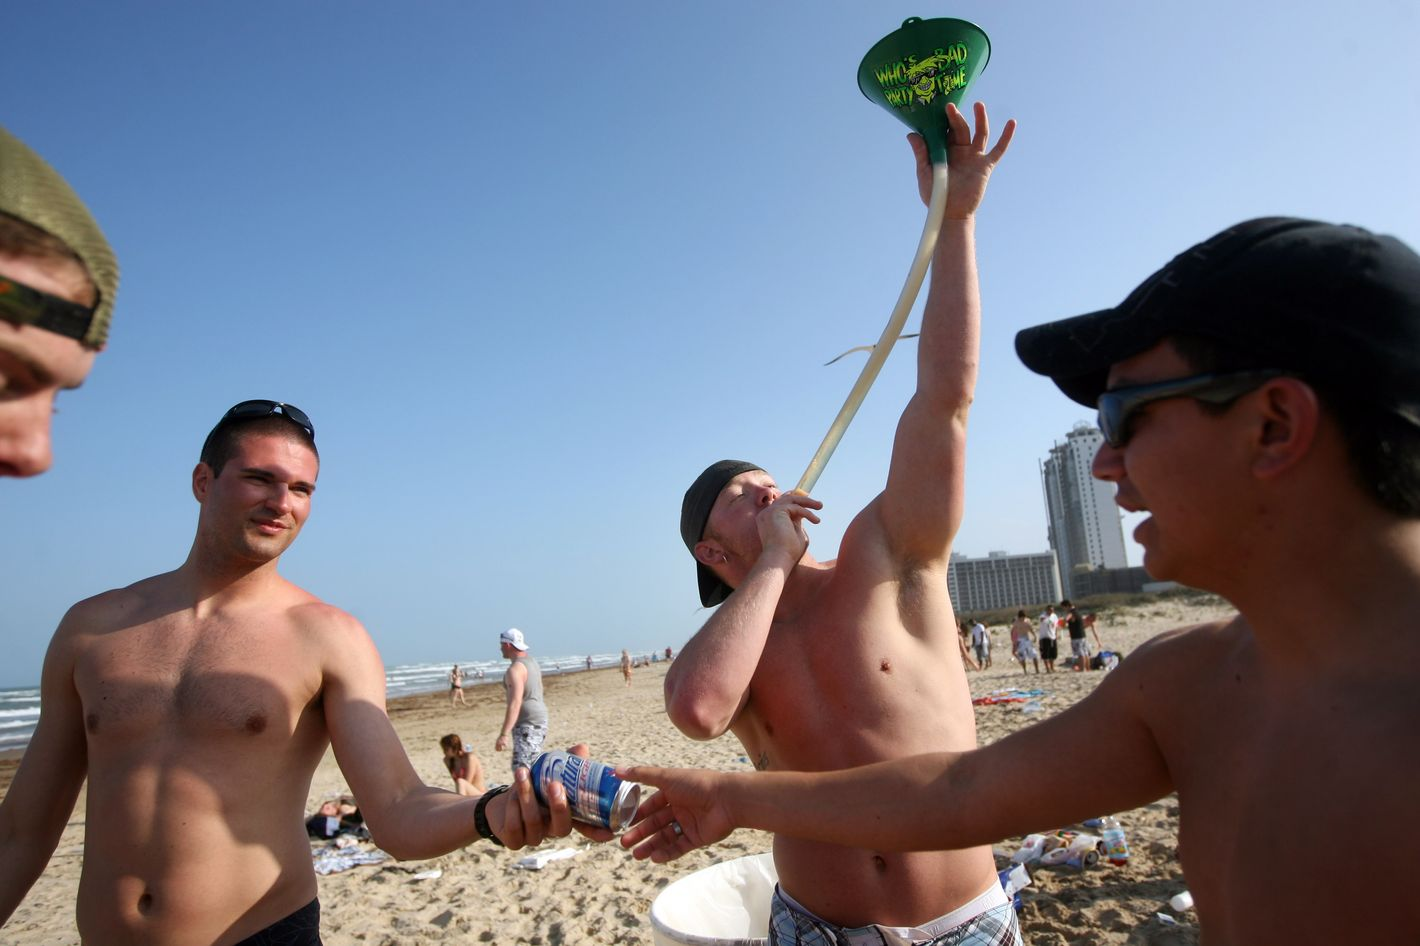 SOUTH PADRE ISLAND, TX - MARCH 25:  Students drink beer from a funnel on the beach during the annual ritual of Spring Break March 25, 2008 on South Padre Island, Texas.  The South Texas island is one of the top Spring Break destinations and attracts students from all over the country.  (Photo by Rick Gershon/Getty Images)